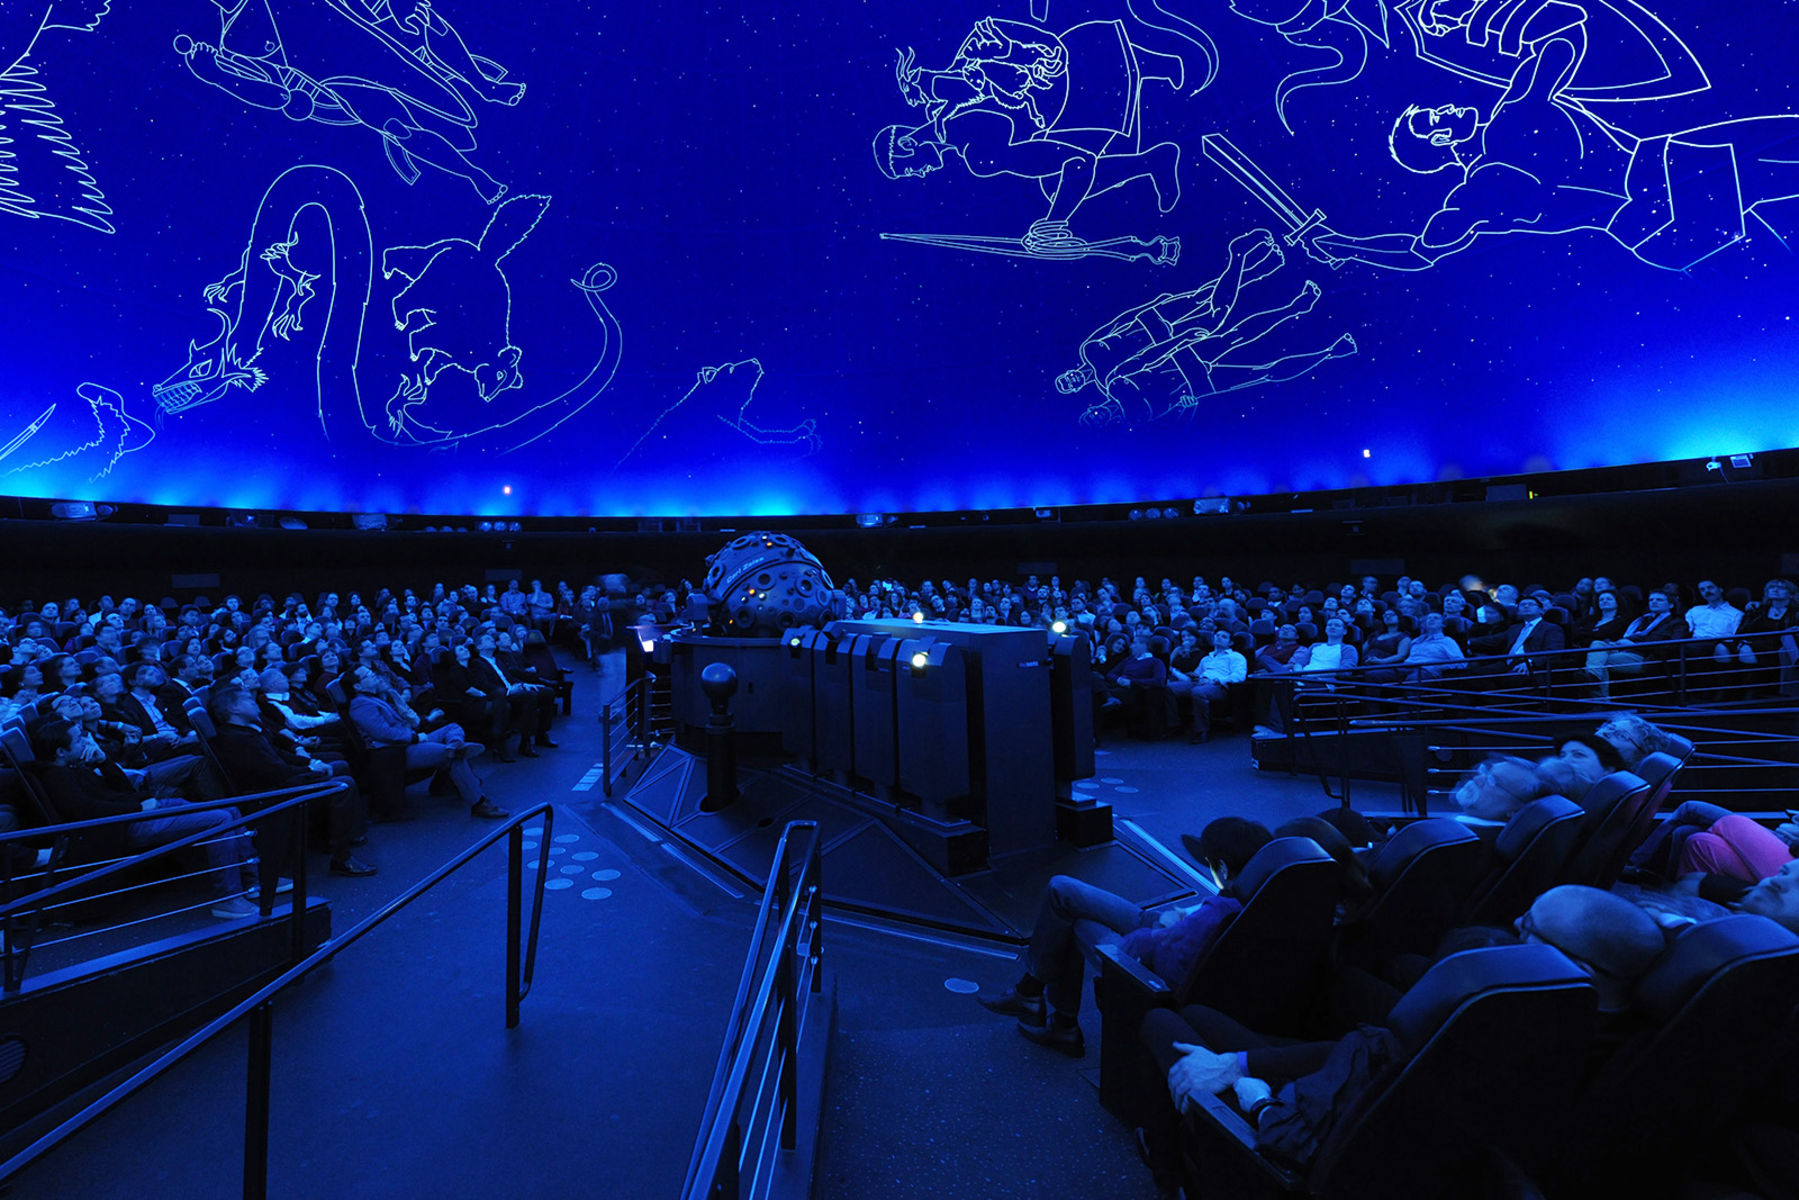 Inside the Hayden Planetarium theater, visitors look upwards at representations of the constellations projected above.